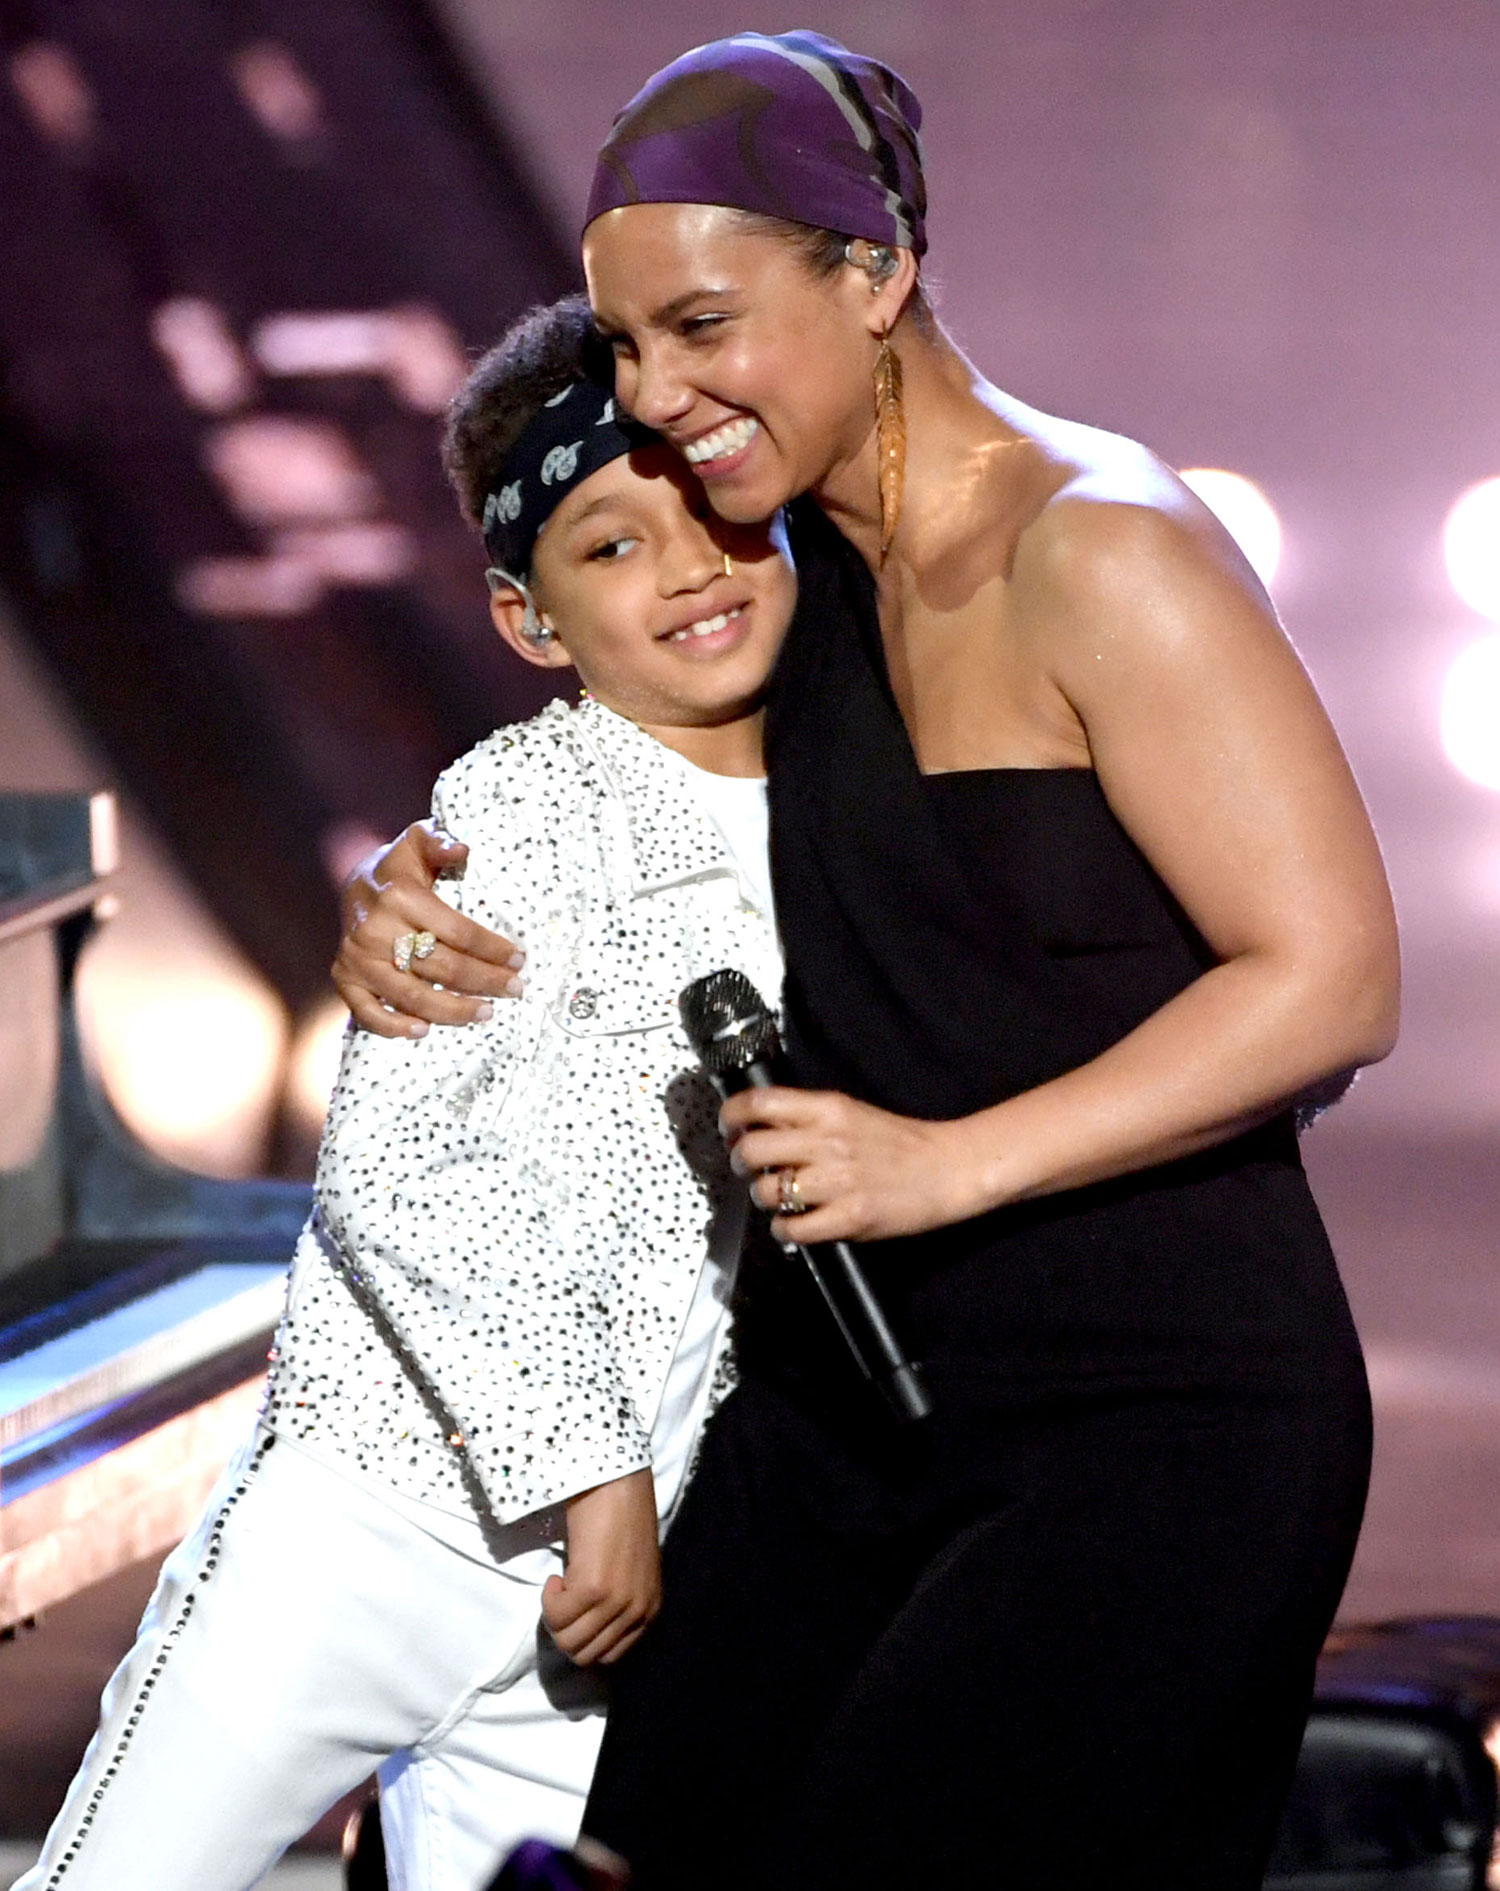 Alicia Keys reminisces over son Egypt first-ever performance: 'It hit me like bricks'